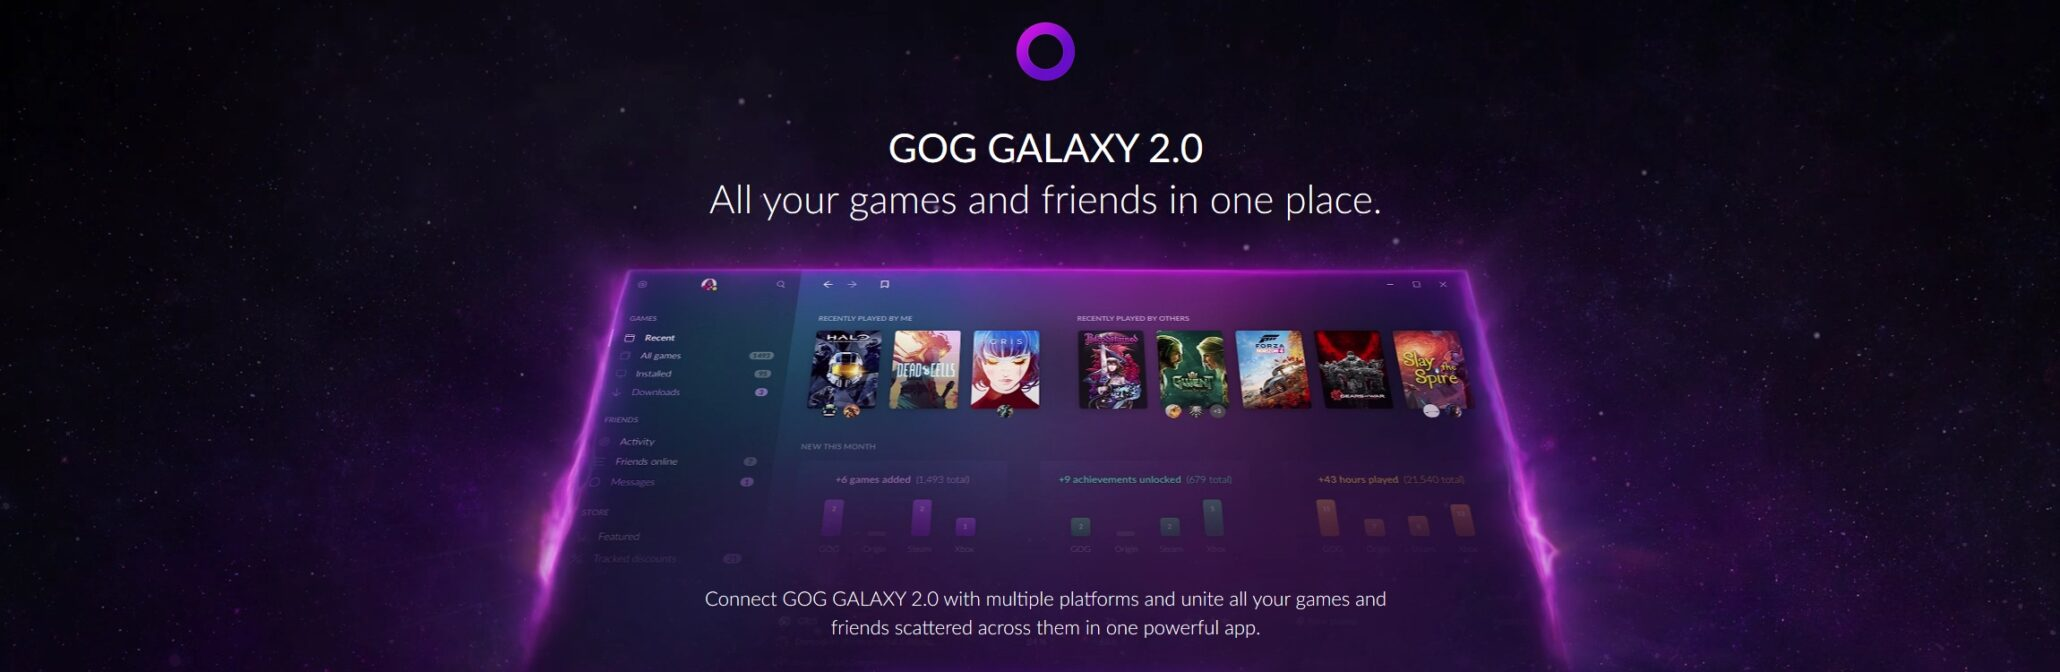 GOG Galaxy 2 0 Wants to Bring Everybody Together (Steam, Epic